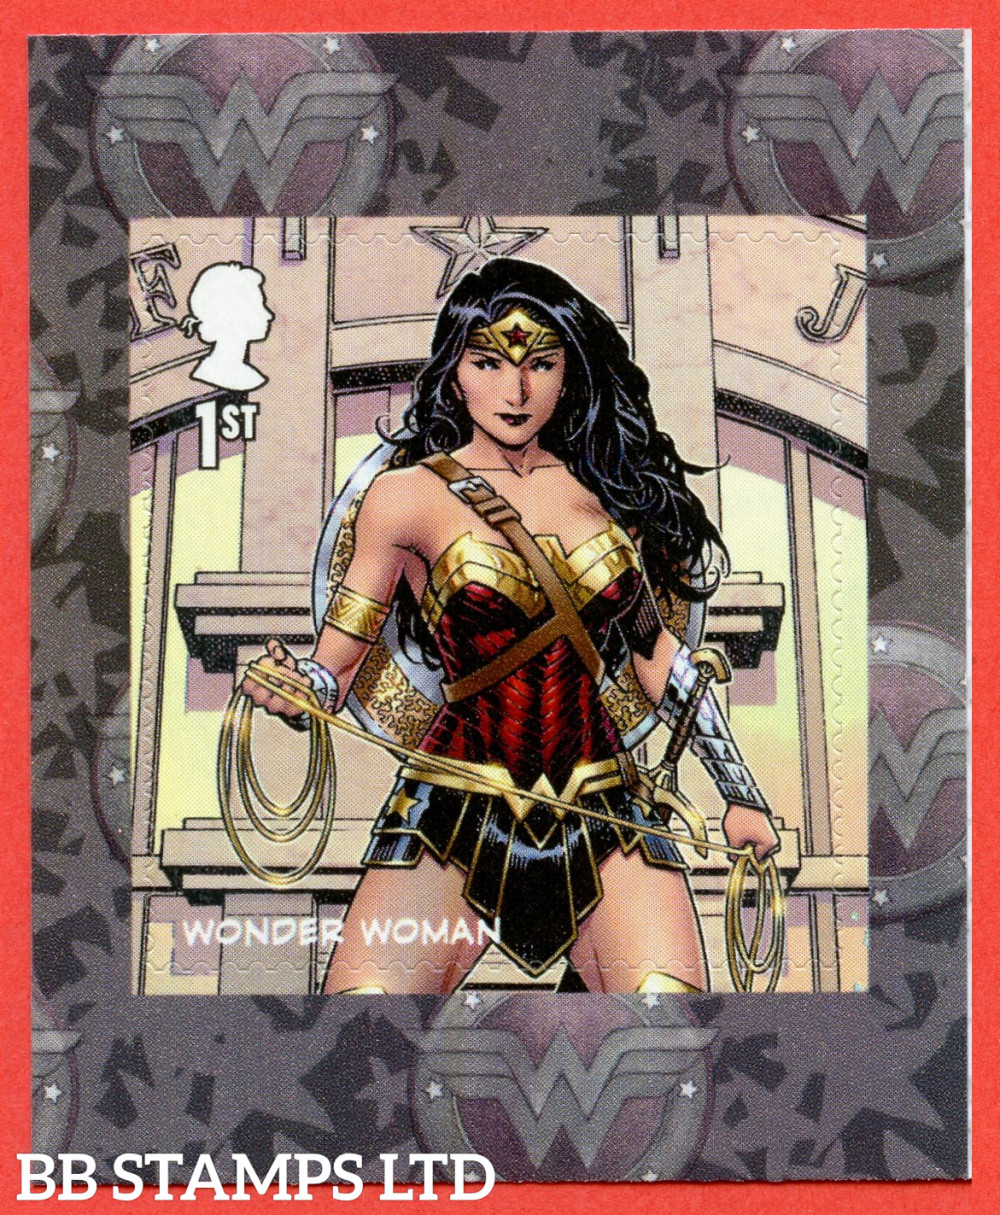 2021 1x1st DC Wonder Woman S/A (from PM83) (single stamp) (under UV light illustrations appear) (17.09.21)